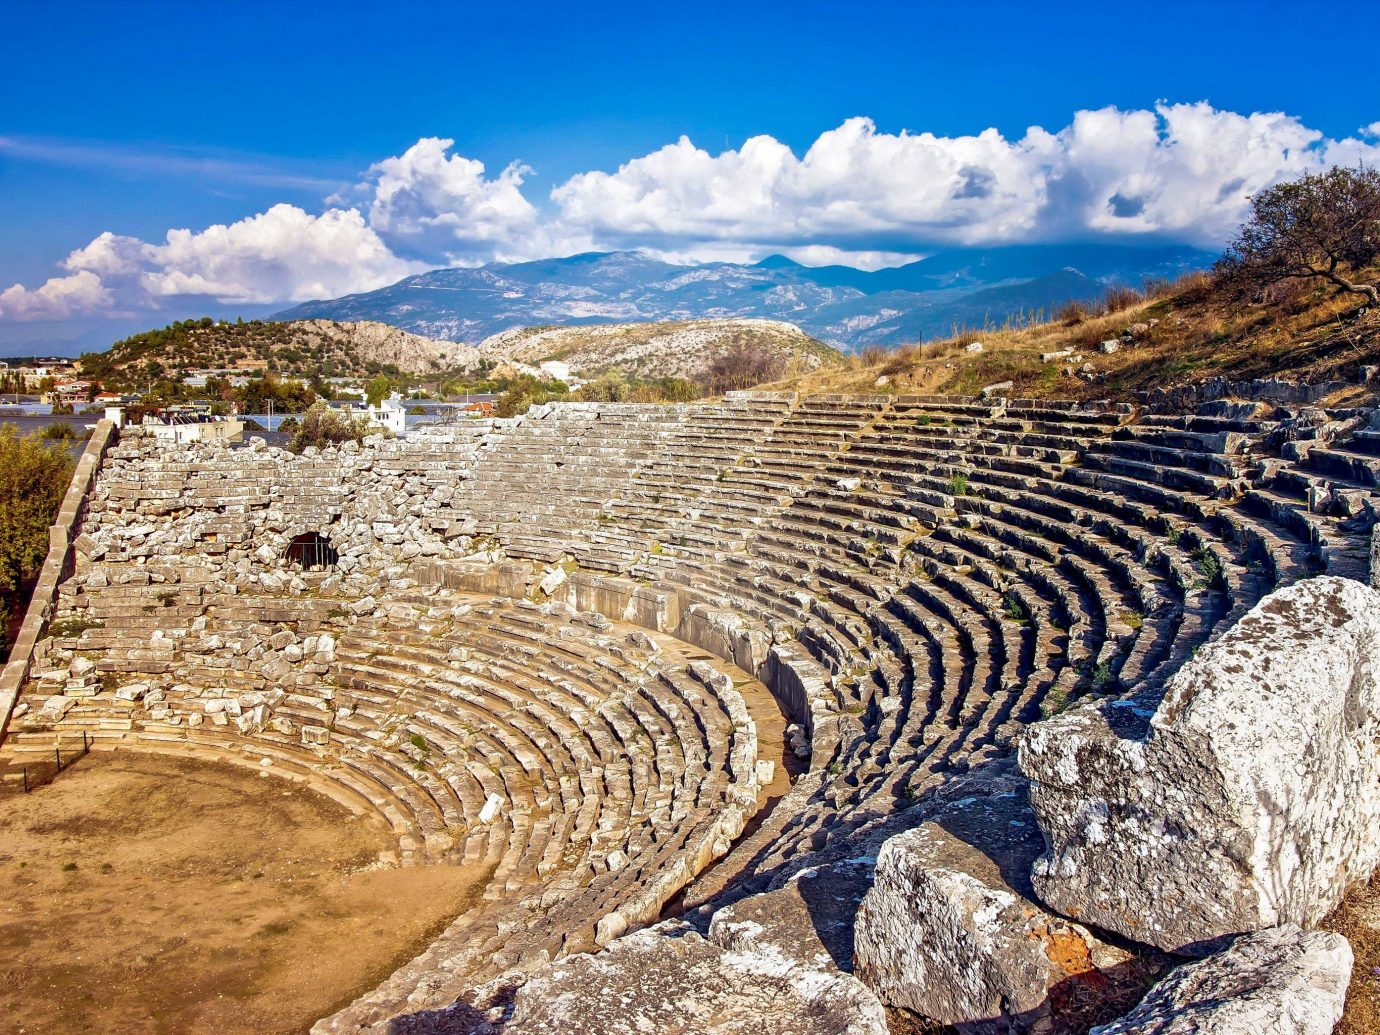 europe Outdoors + Adventure Trip Ideas amphitheatre sky historic site ancient history archaeological site Ruins rock geology landscape field tourism cloud unesco world heritage site elevation Terrace mountain formation